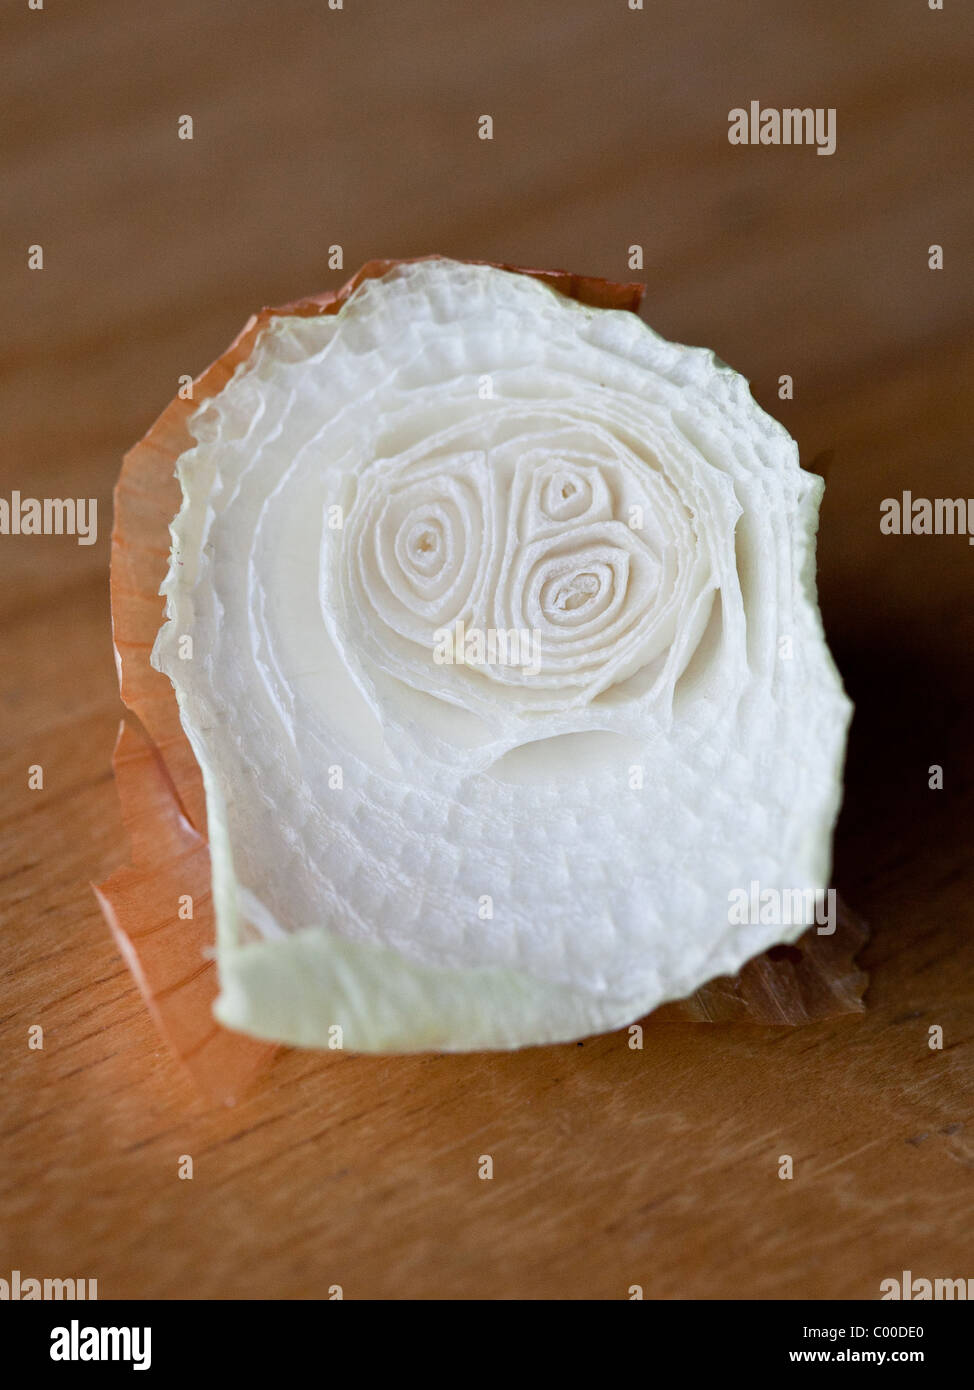 A leftover Onion top dries on a wooden table - Stock Image